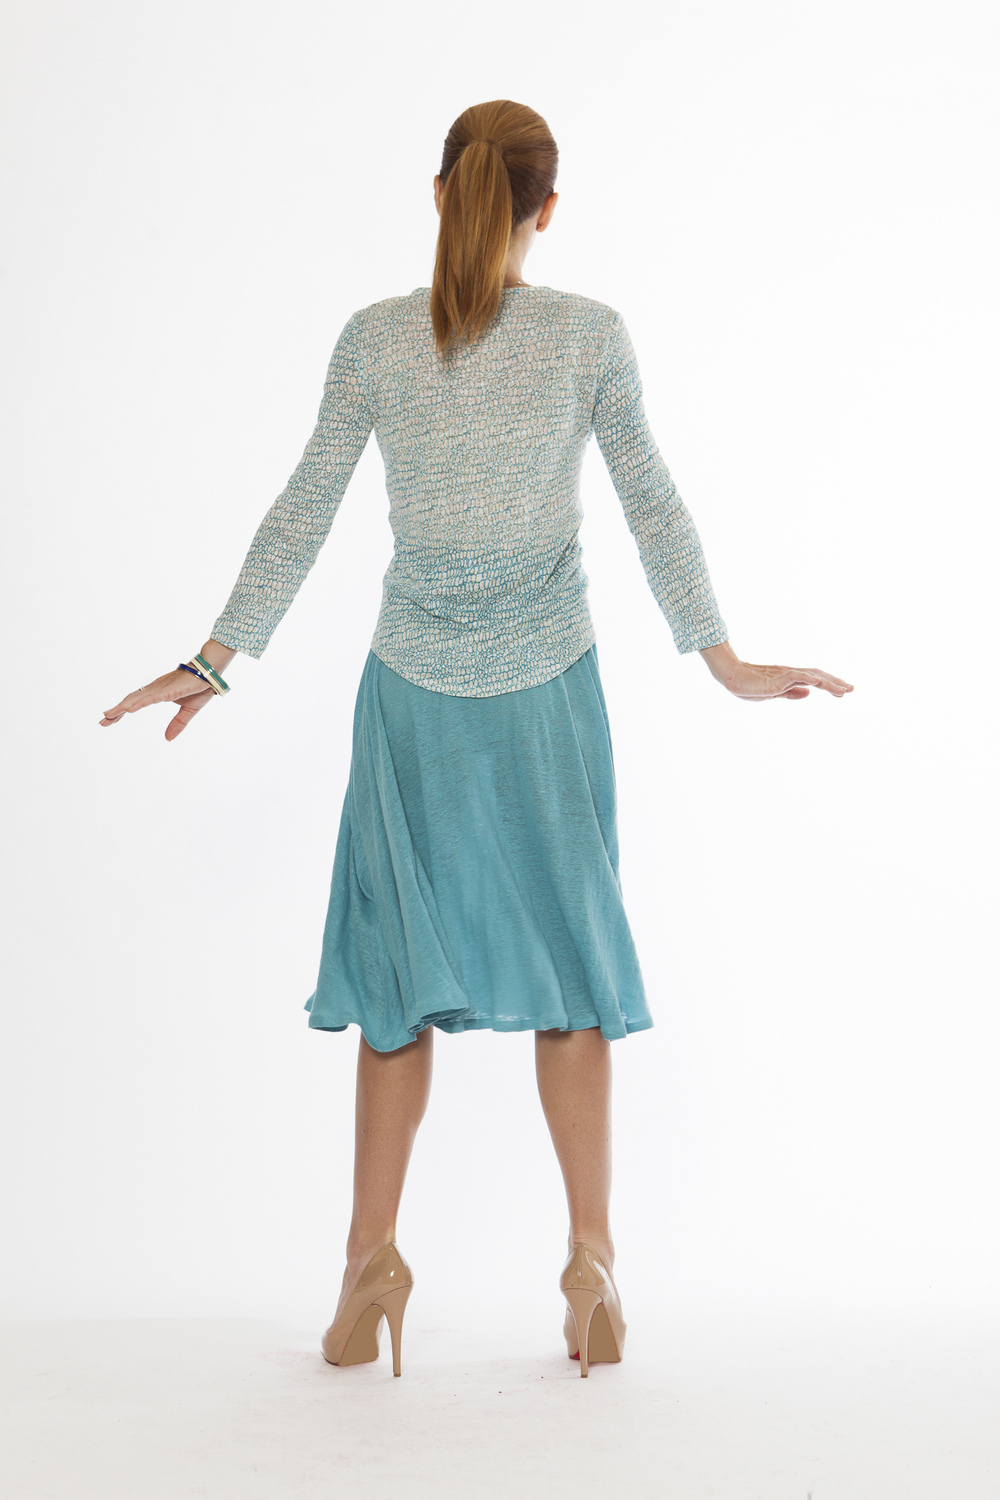 Visionary Blouse + Ripple Skirt